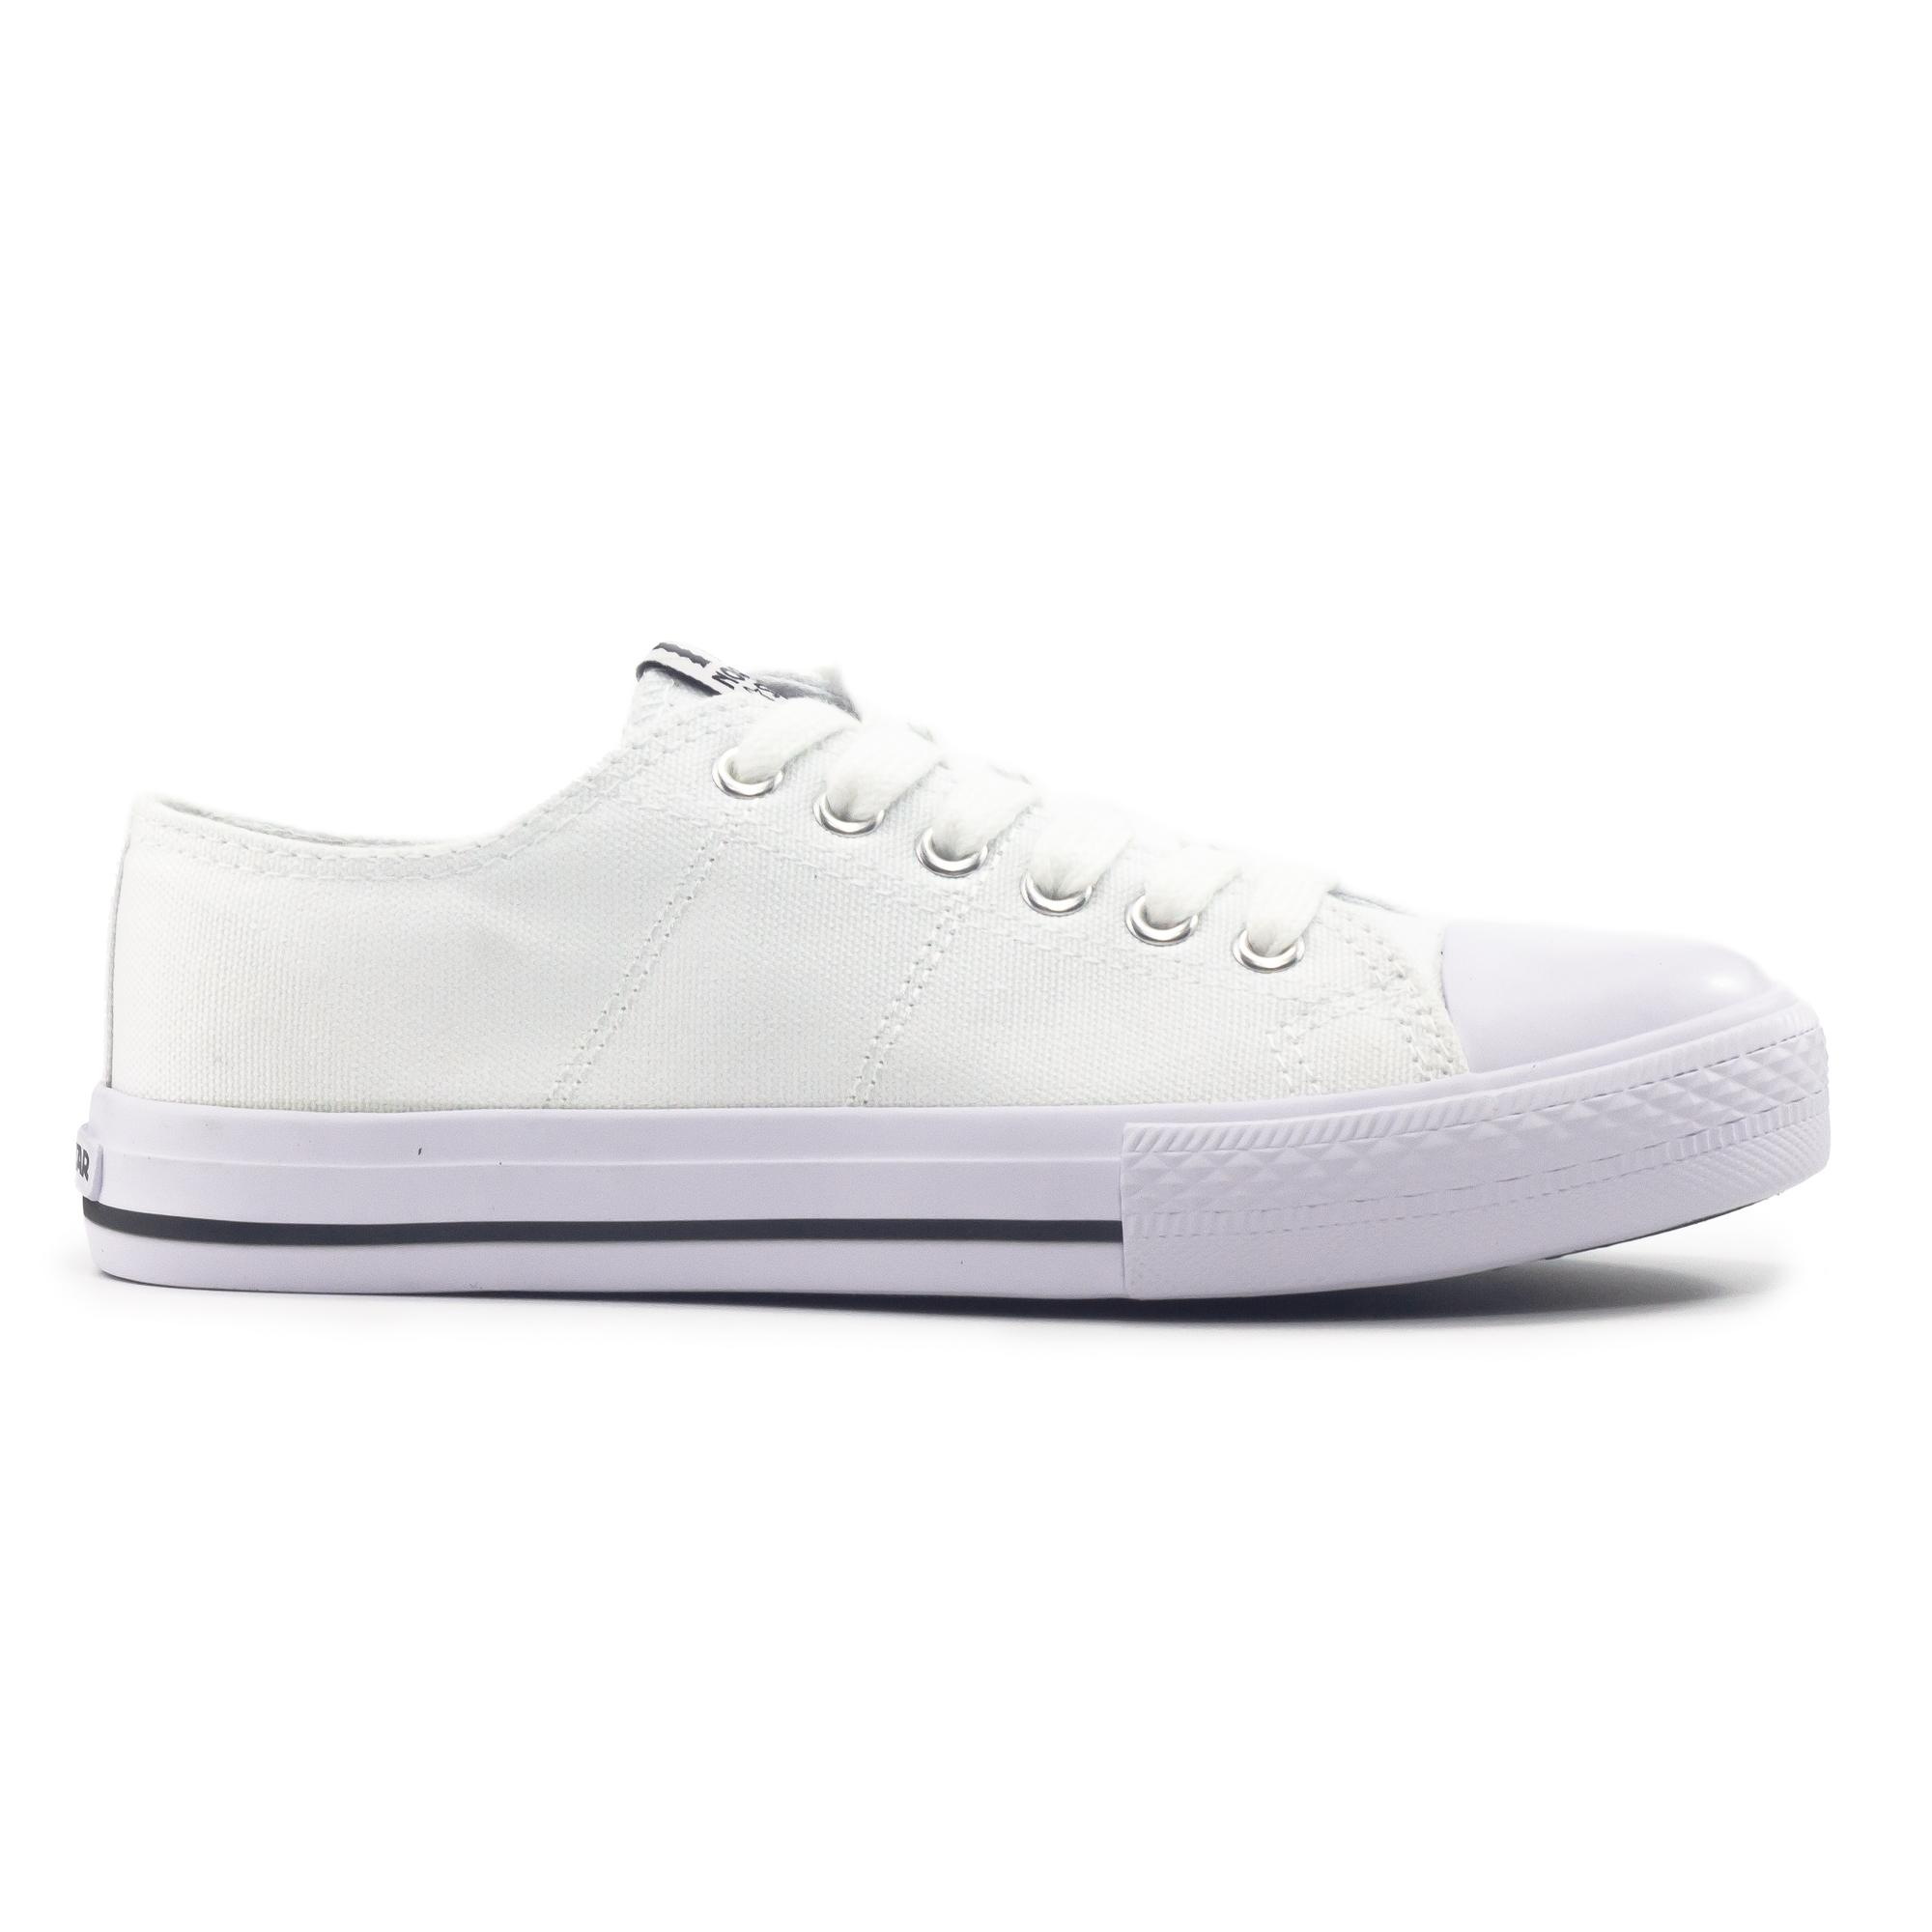 NORTH STAR YOUTH SCHOOL SPORTS SHOES WHITE 5891092